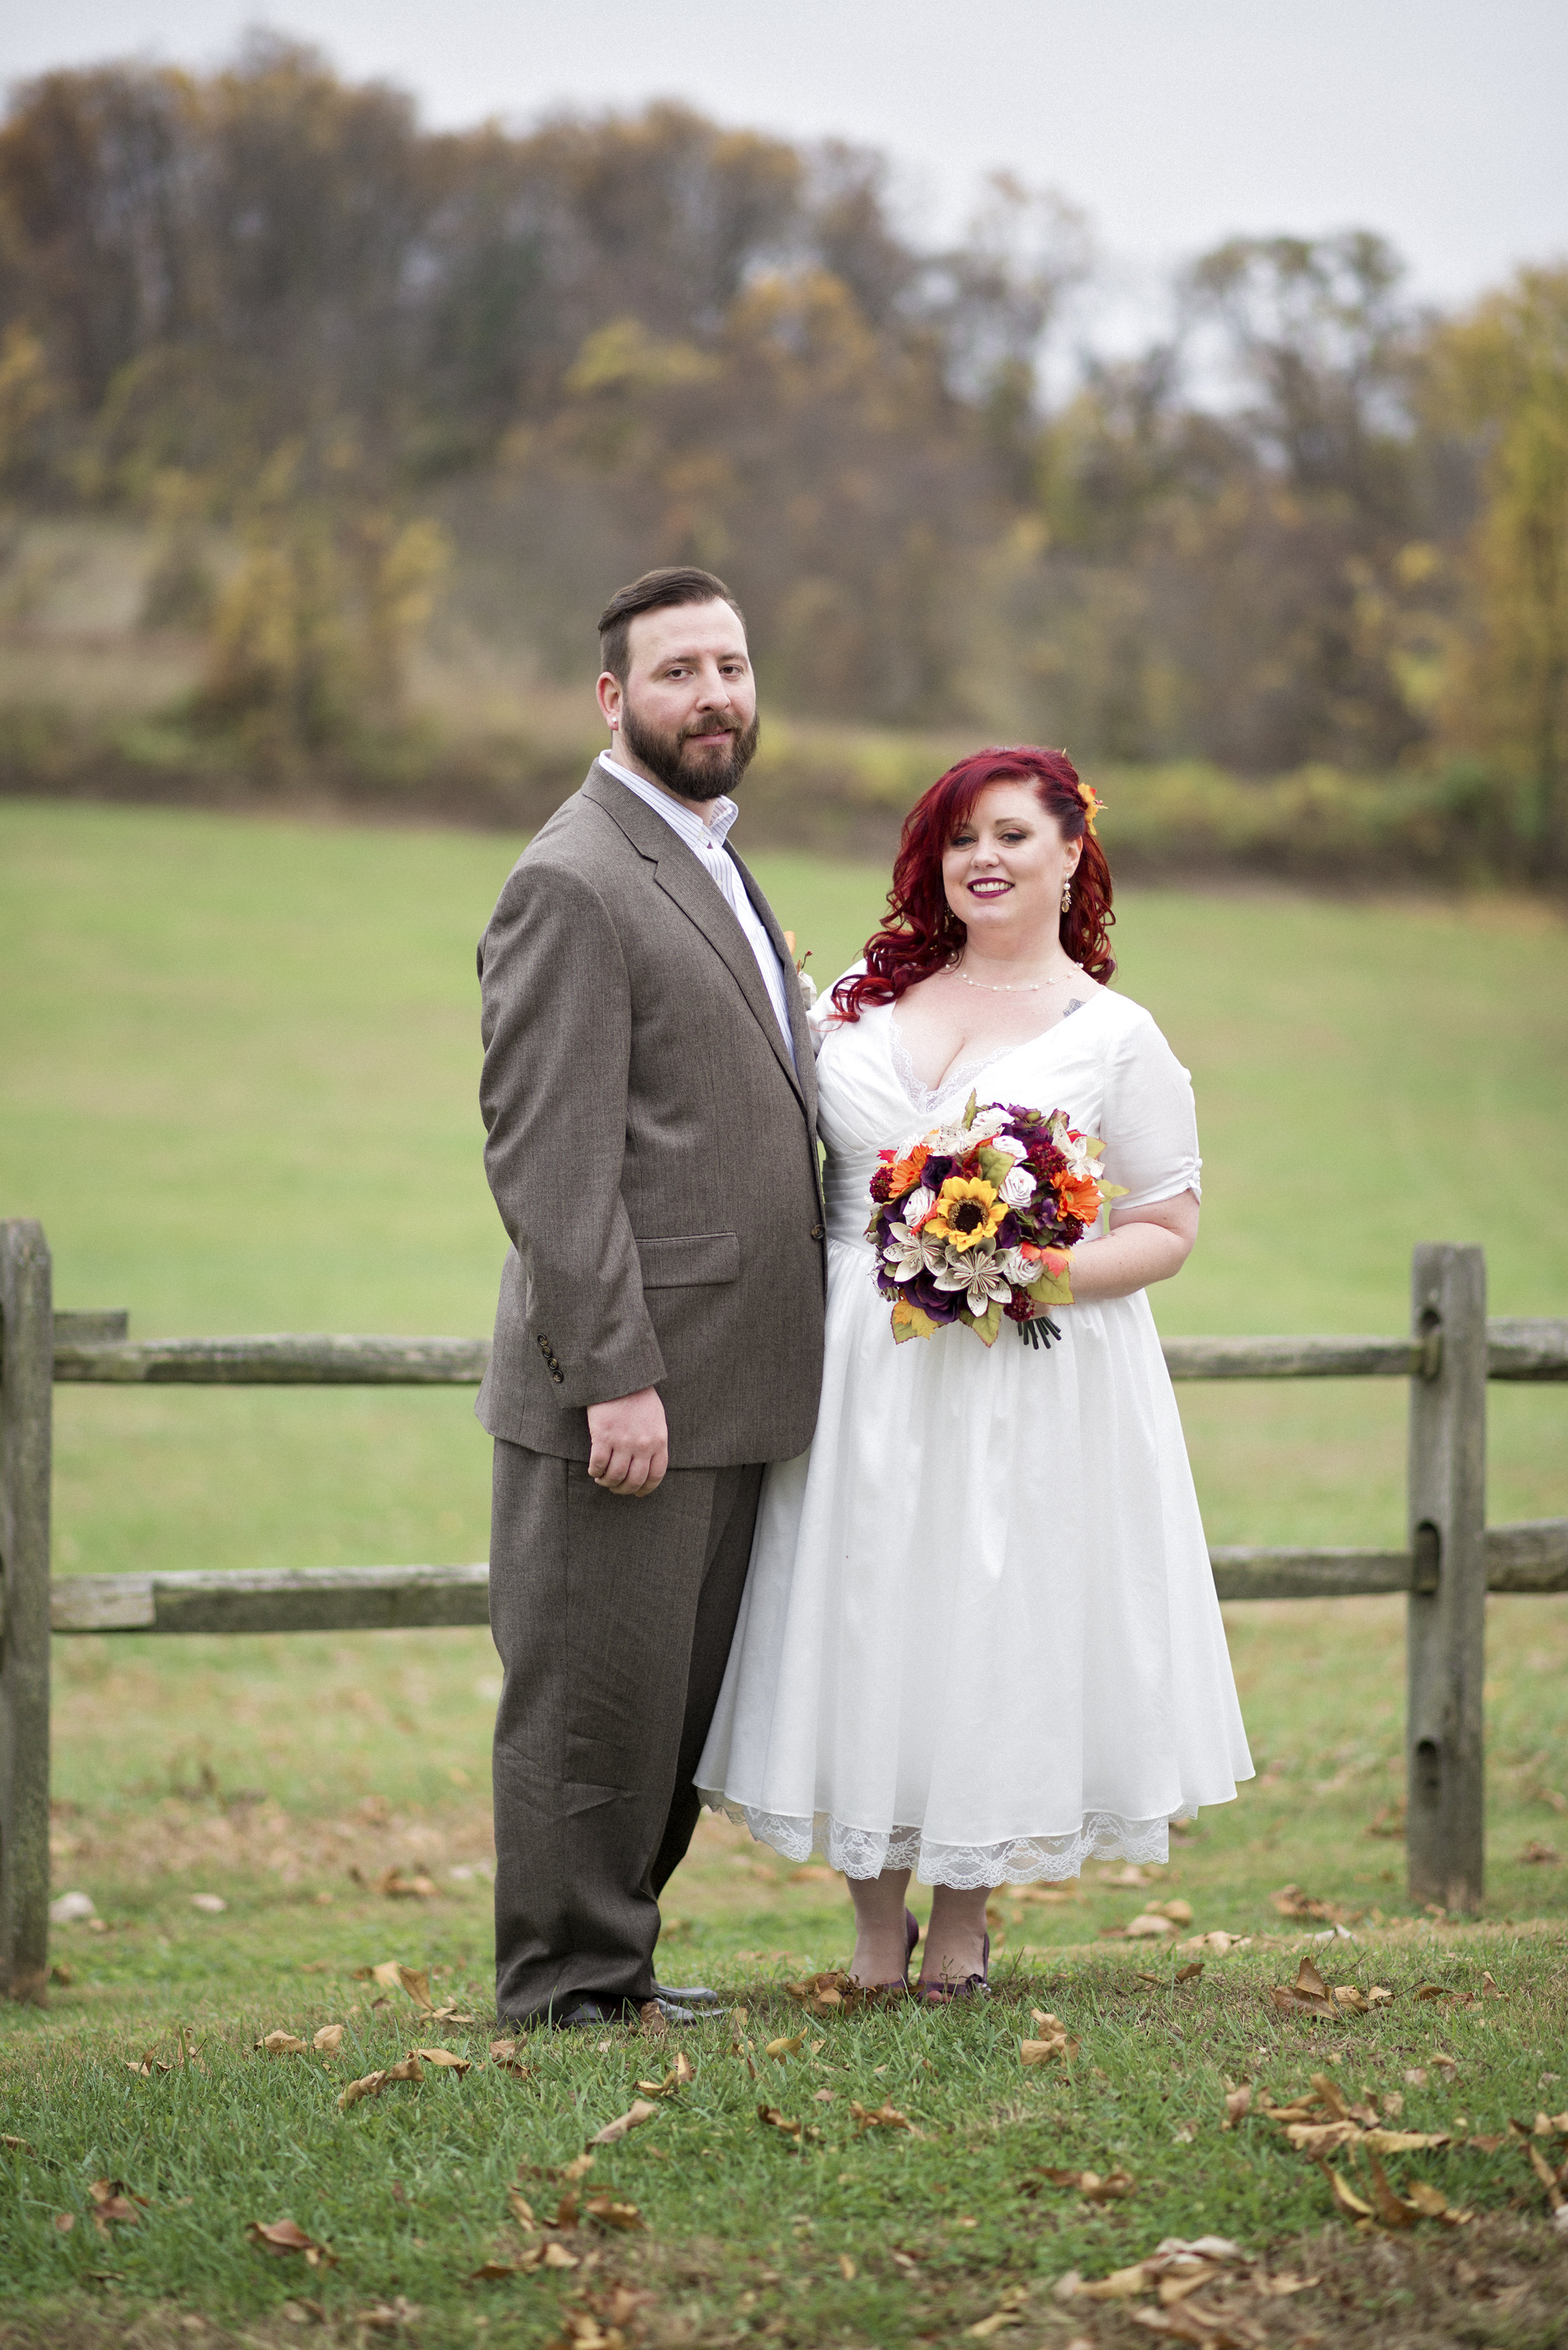 Couples Photo | Amber Corryn Photography